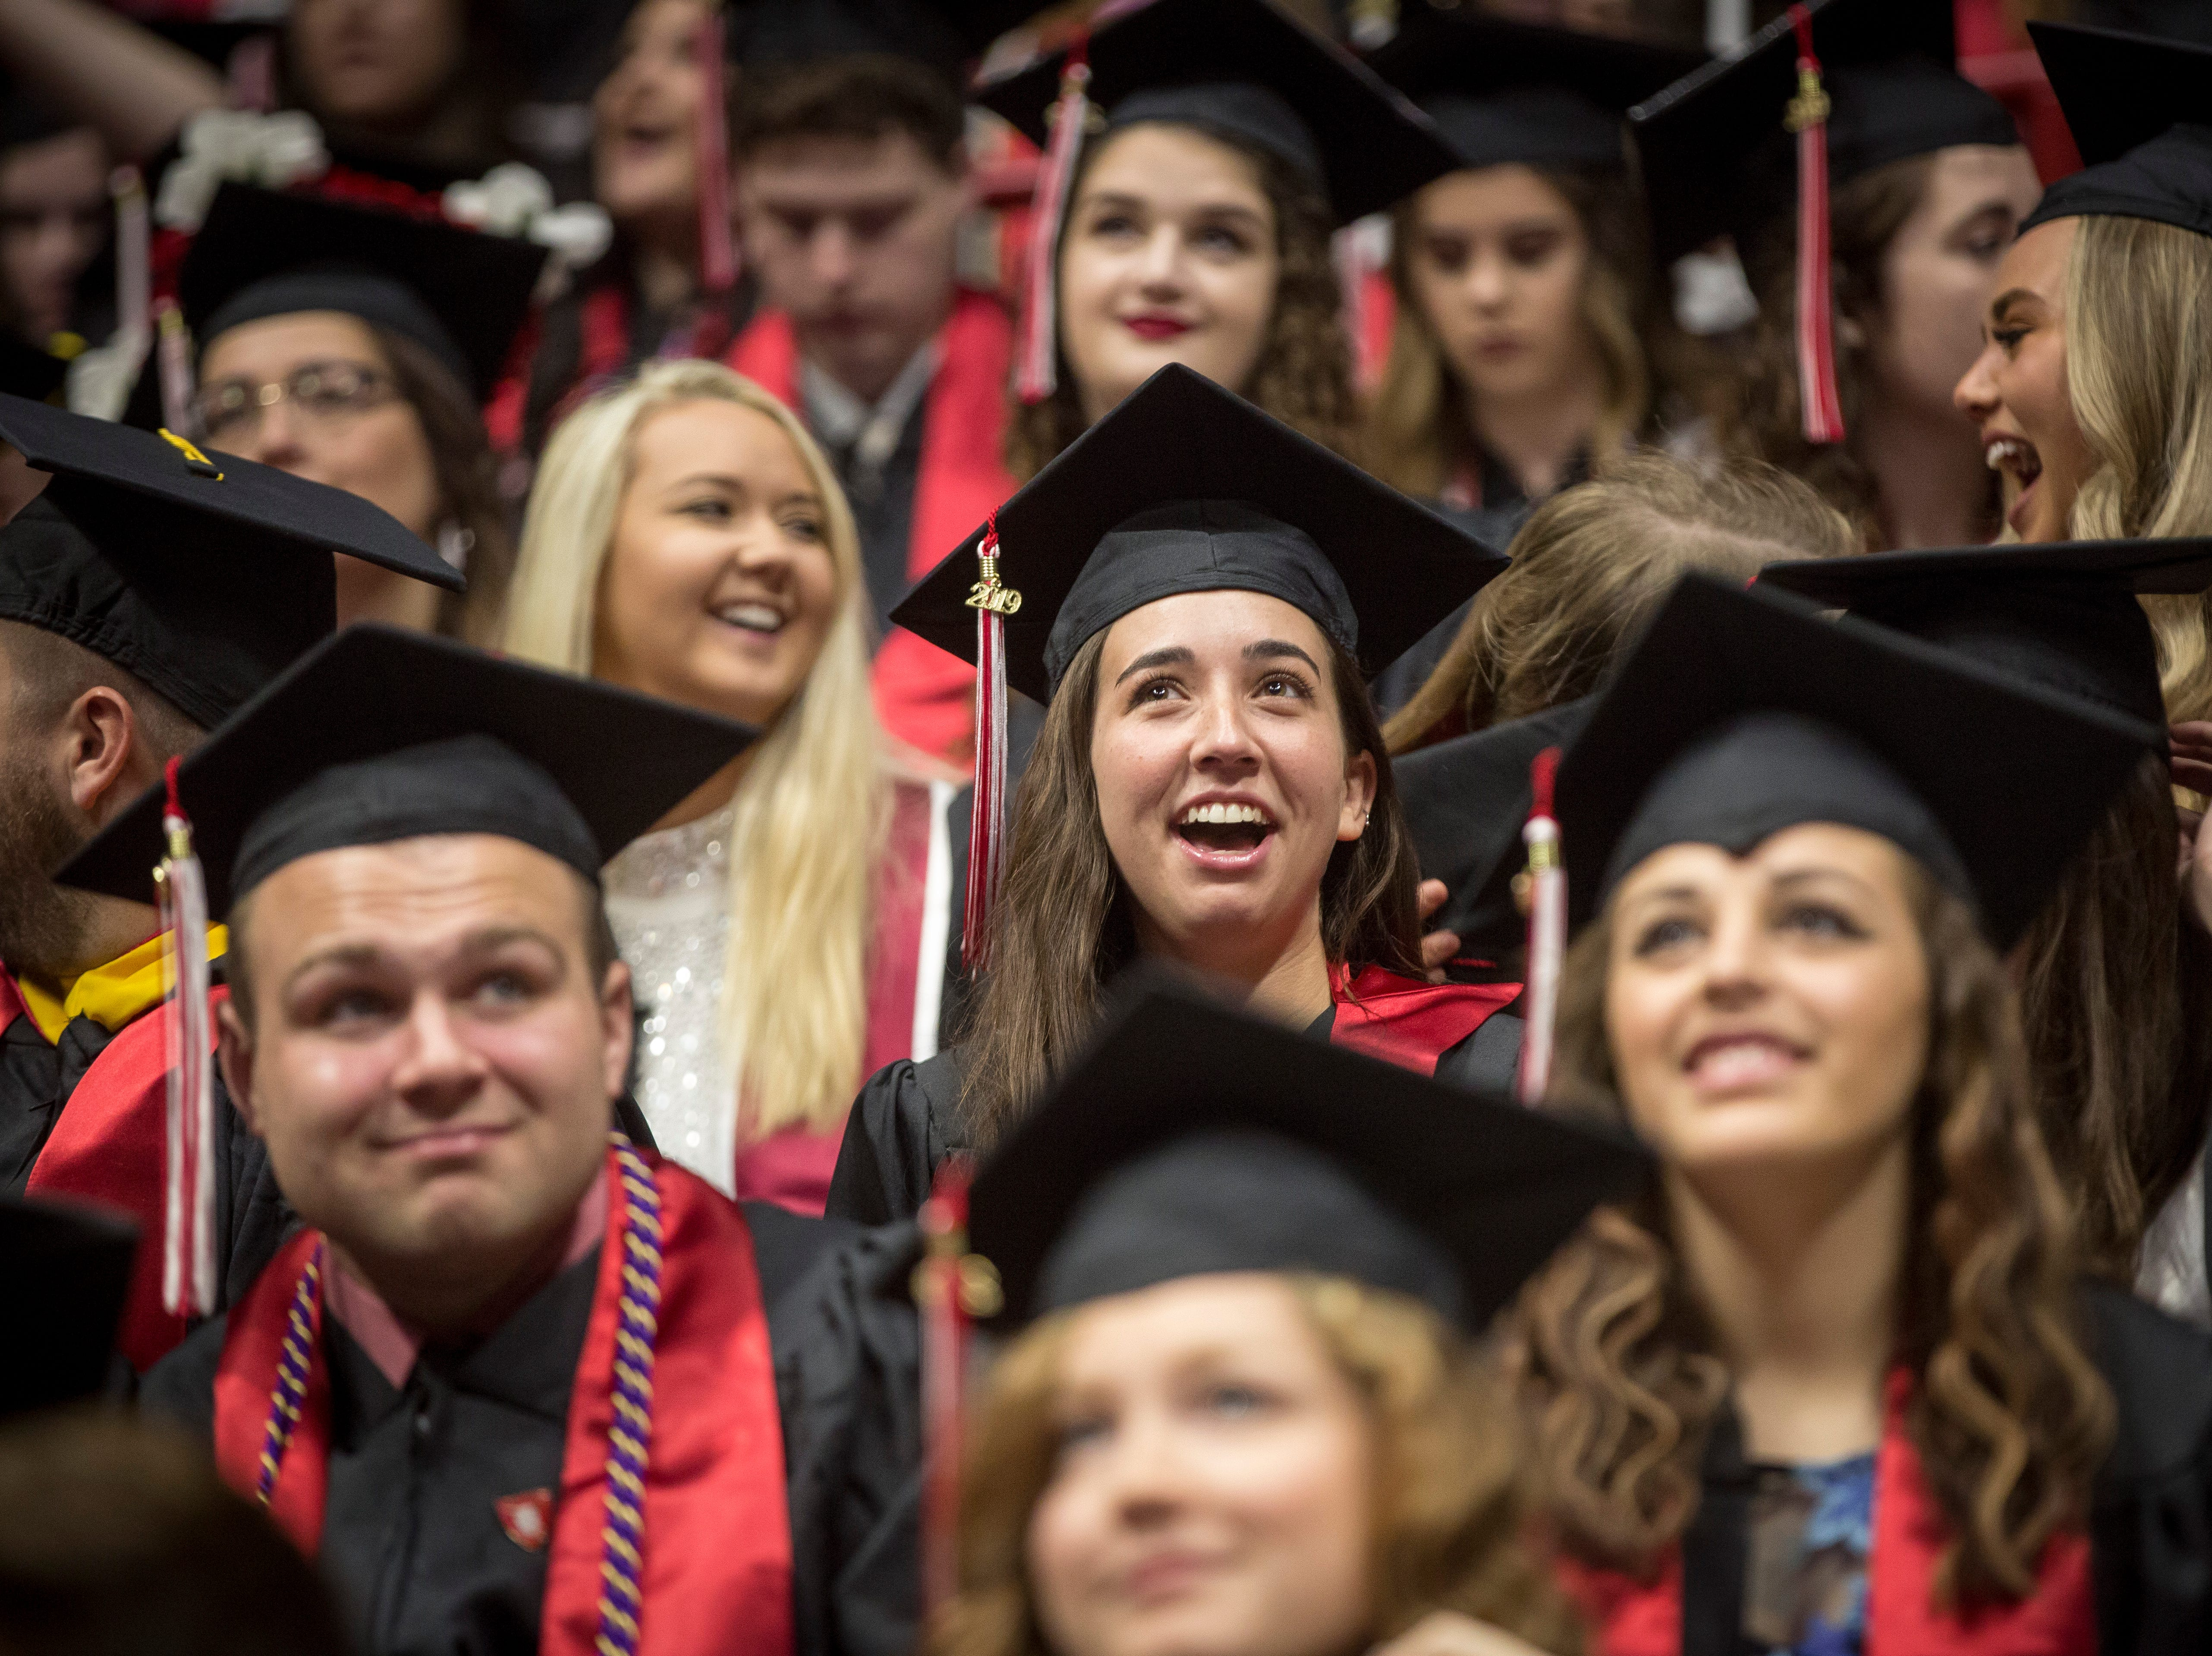 Graduates react to the big screen in the center of the arena which highlighted cheering students and more during the ceremony on May 4 during Ball State University's Spring Commencement inside Worthen Arena. Inclement weather moved the ceremony indoors.